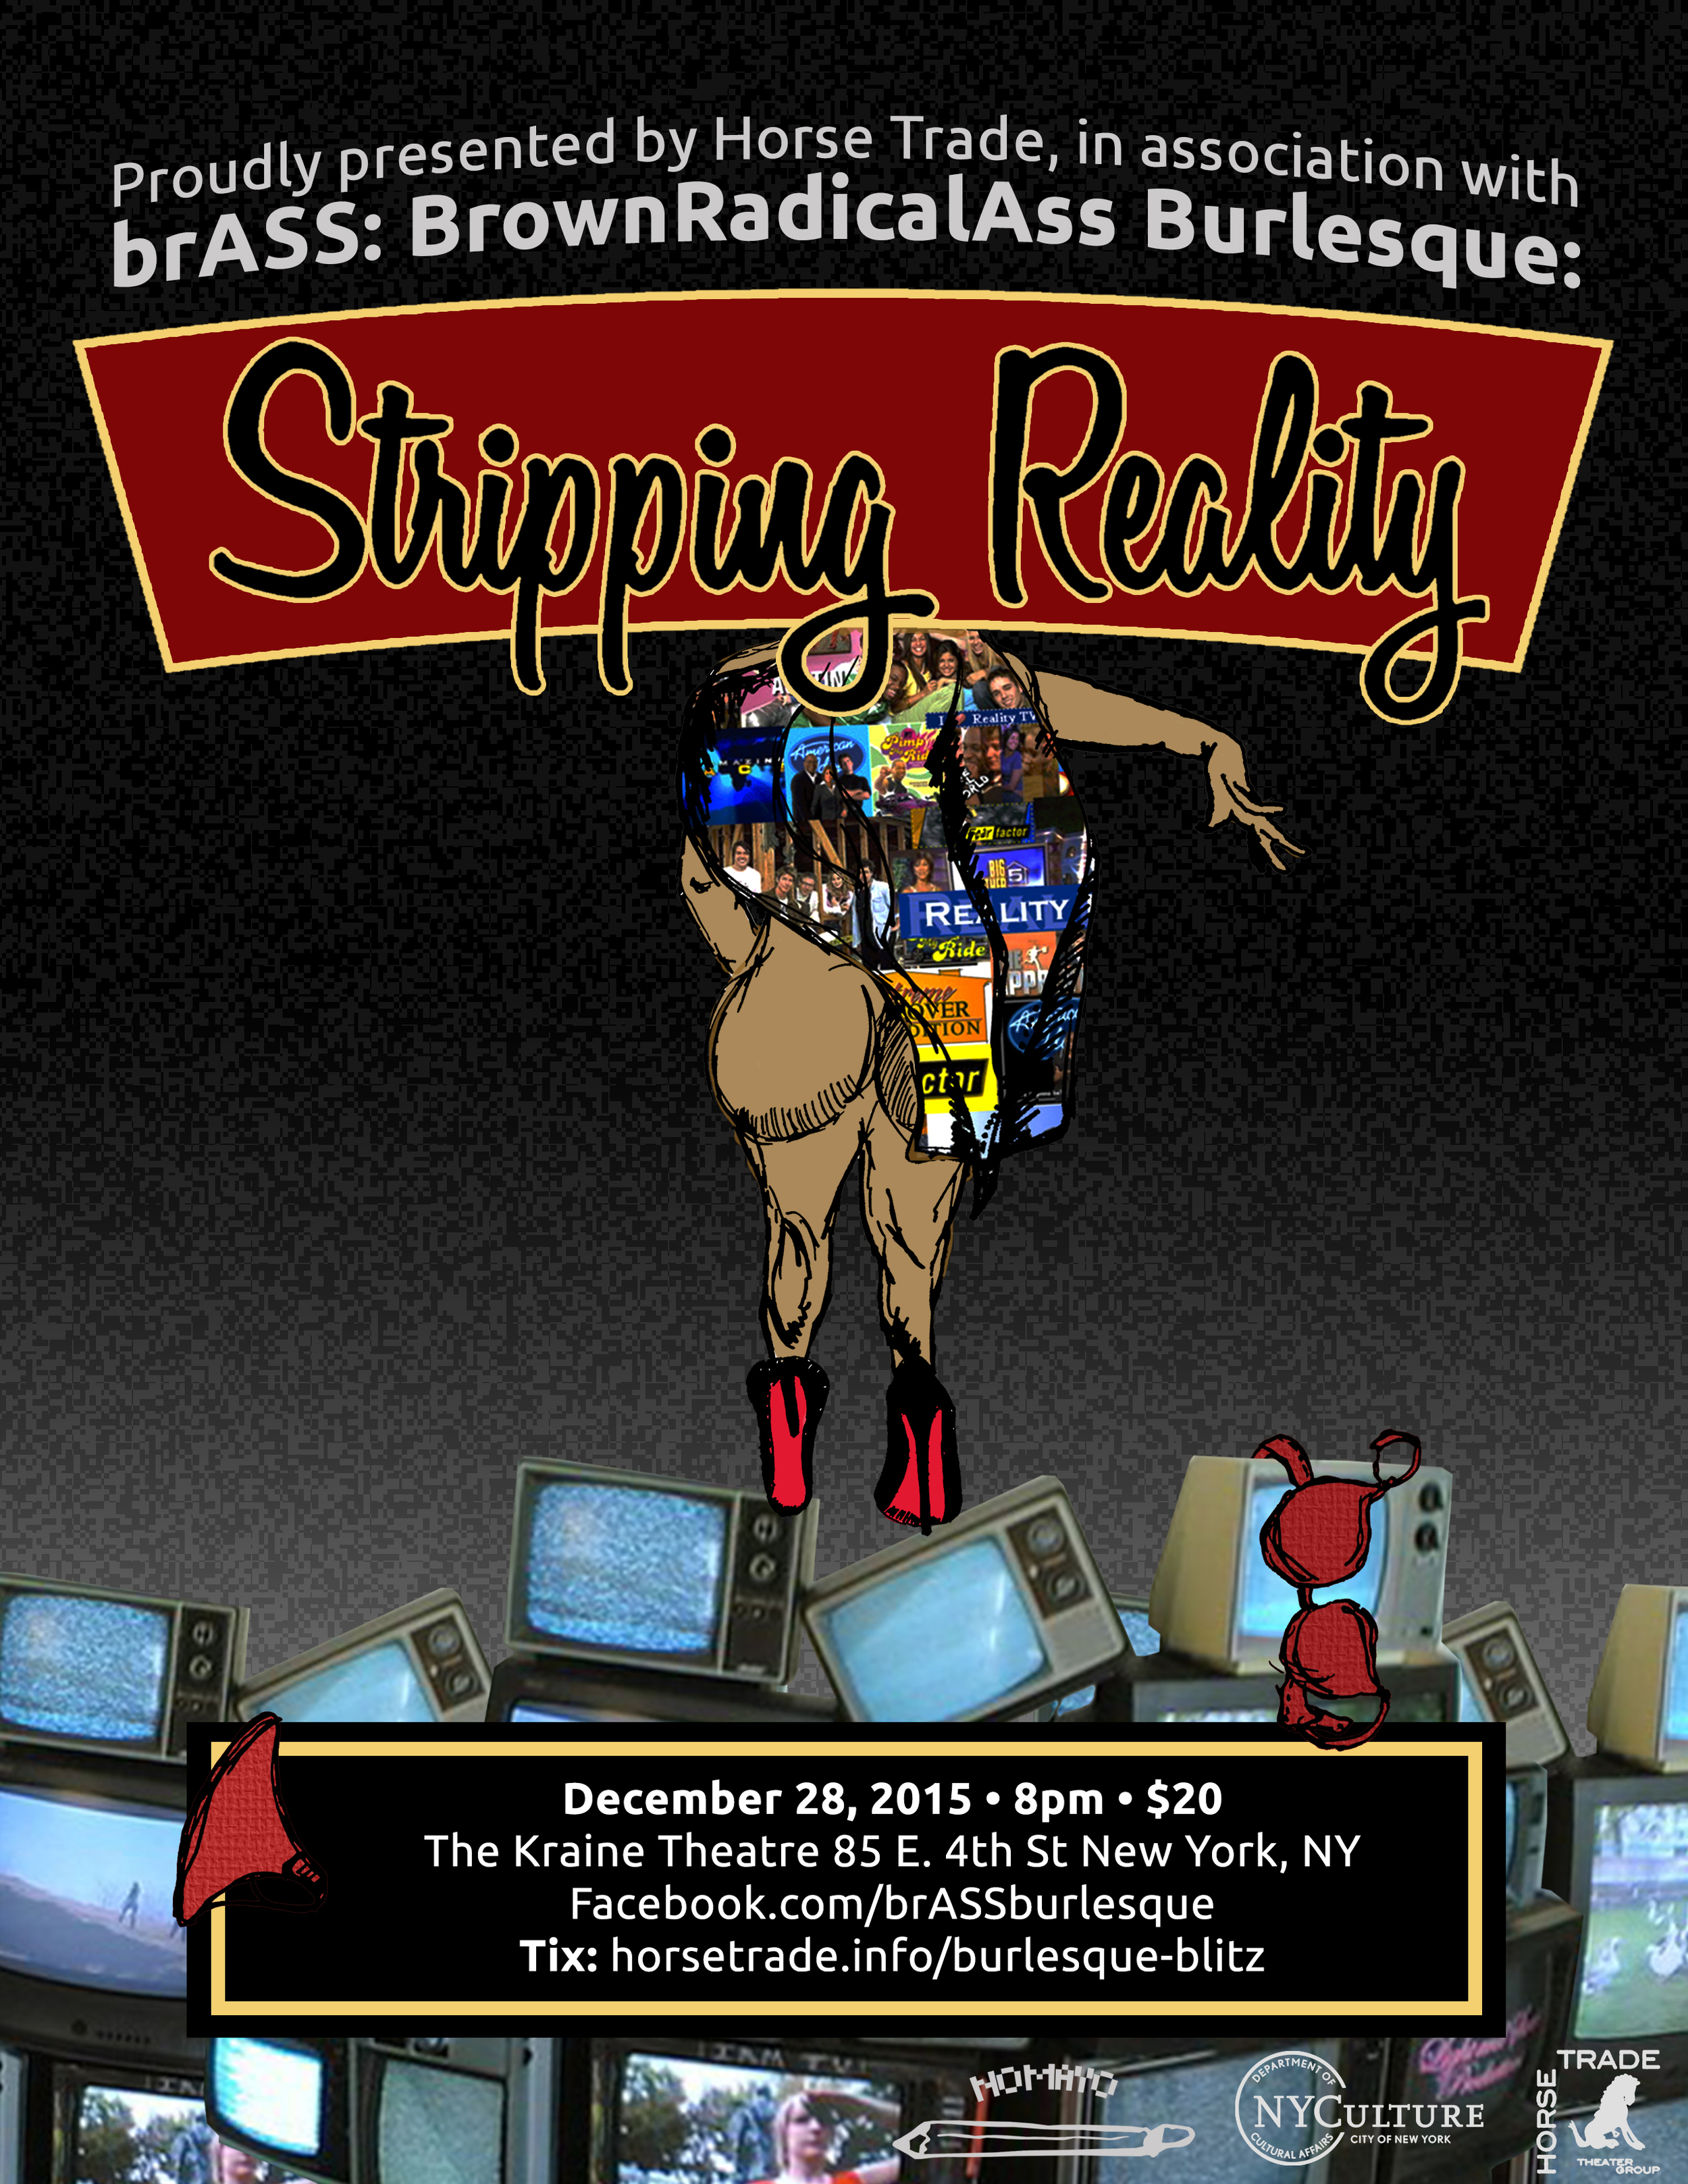 """Stripping Reality"" in NYC, December 28th, 2015, at 8pm:  http://tiny.cc/strippingreality"